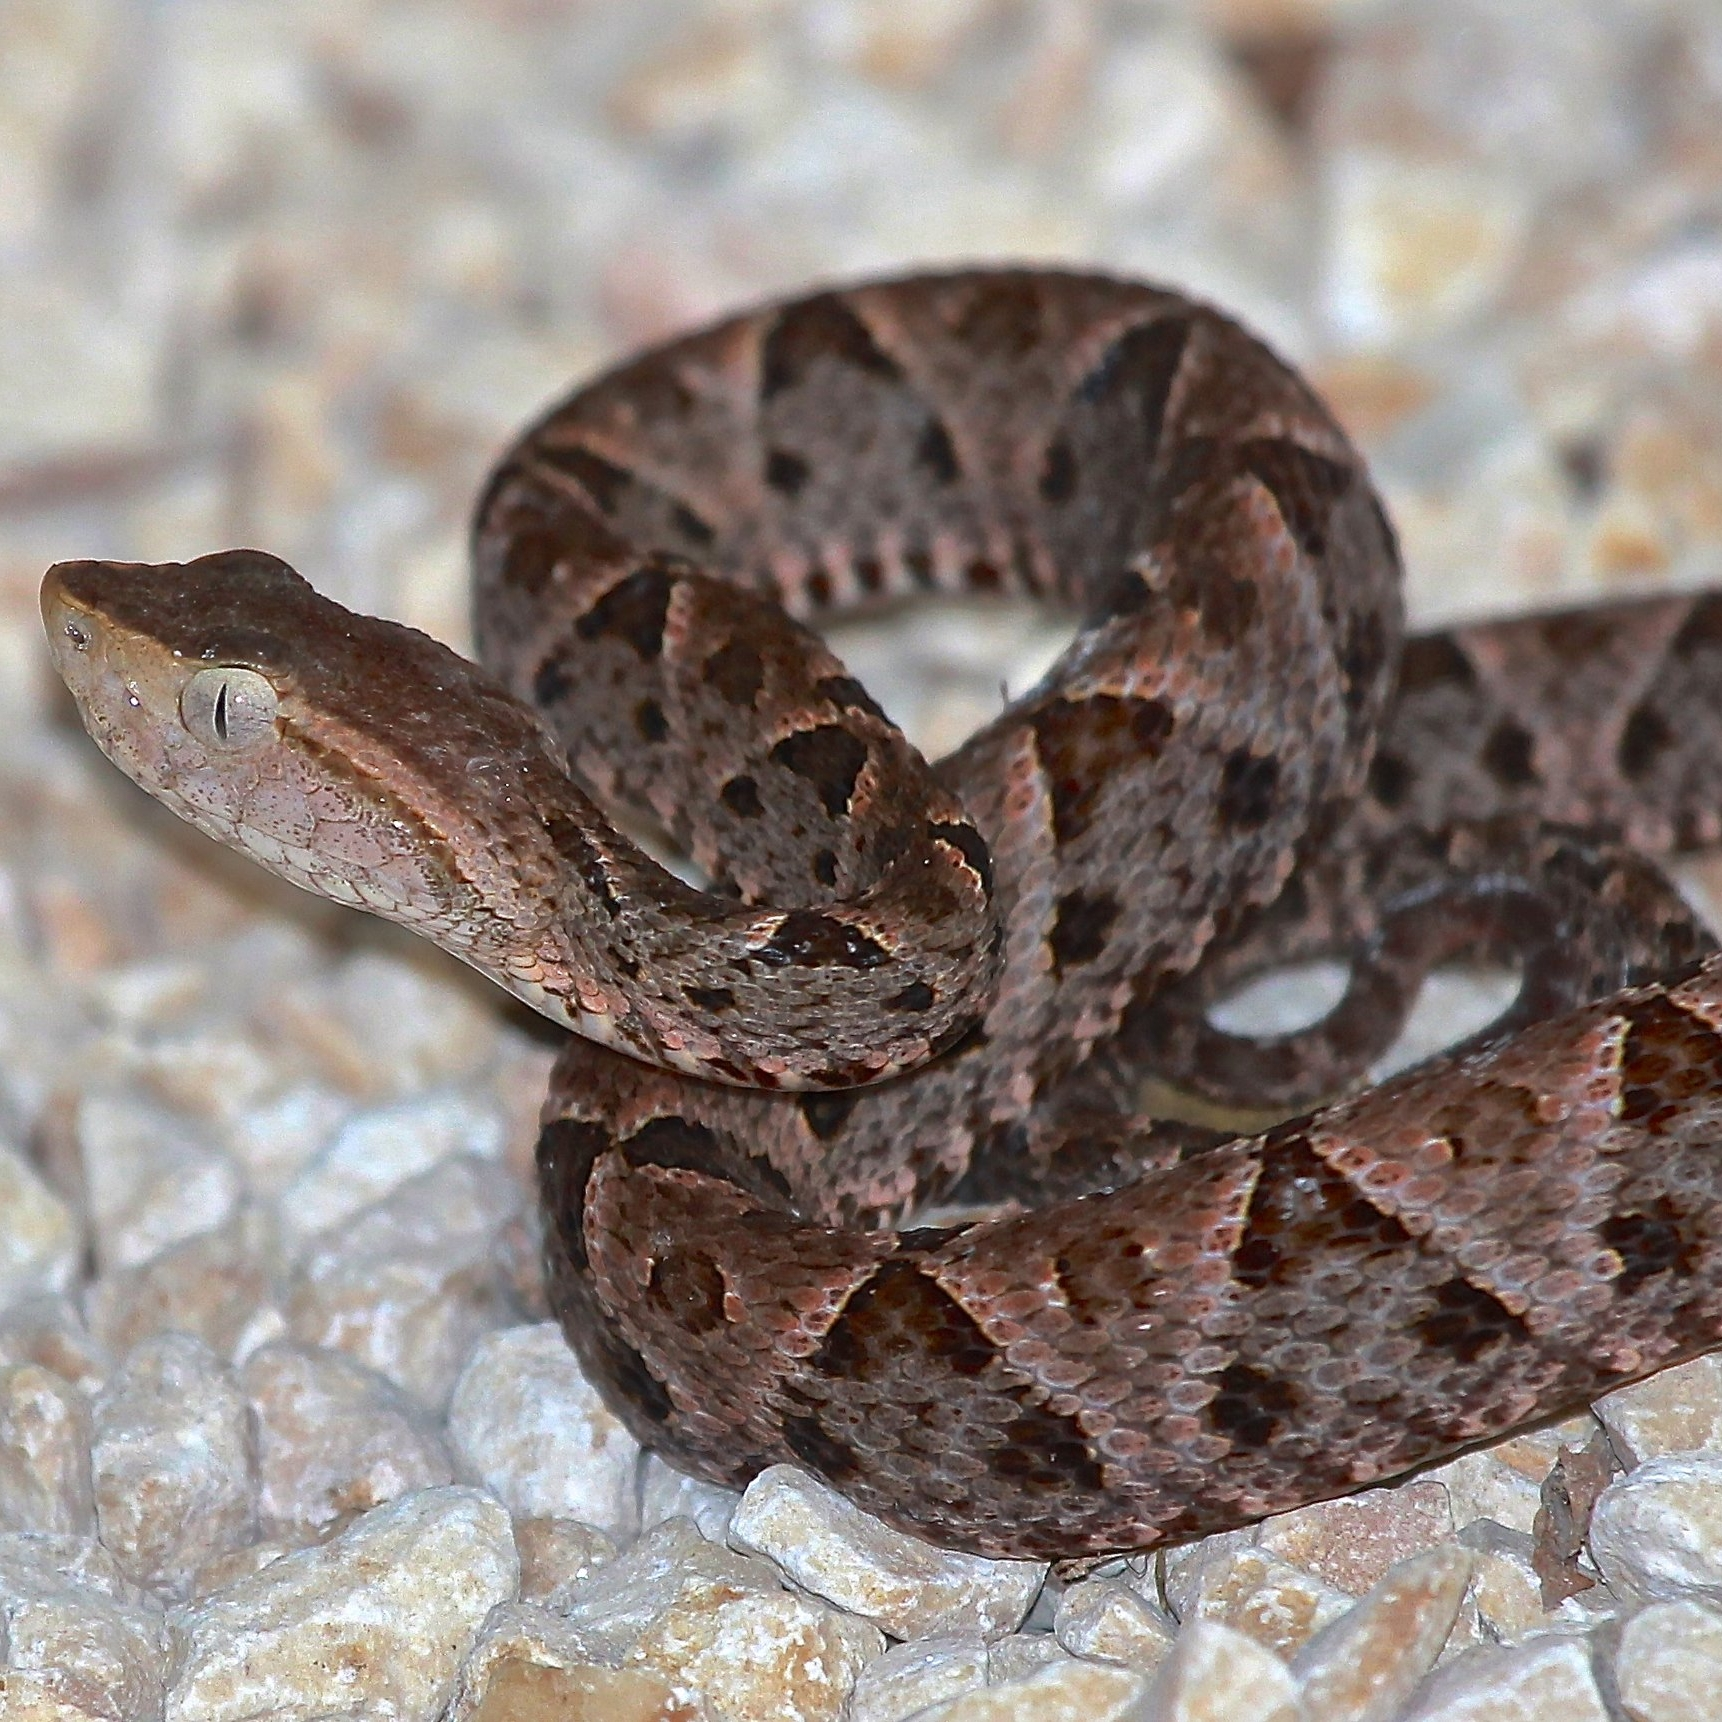 One of the most venomous snakes on the planet can be found in the jungles of Quintana Roo Mexico